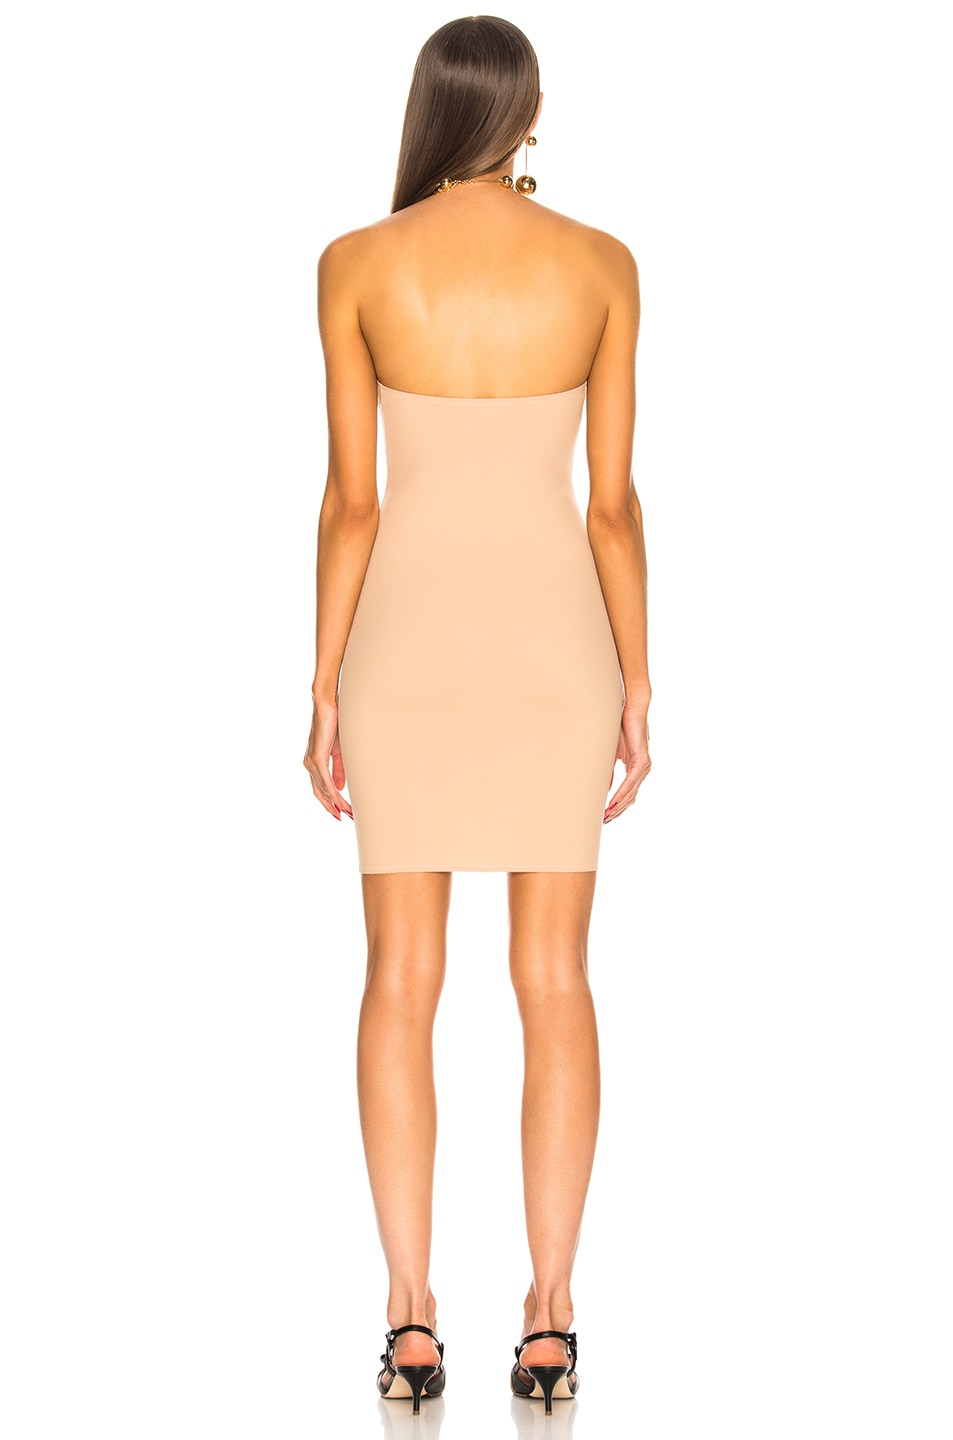 Image 4 of fleur du mal for FWRD Strapless Bodycon Slip in Nude